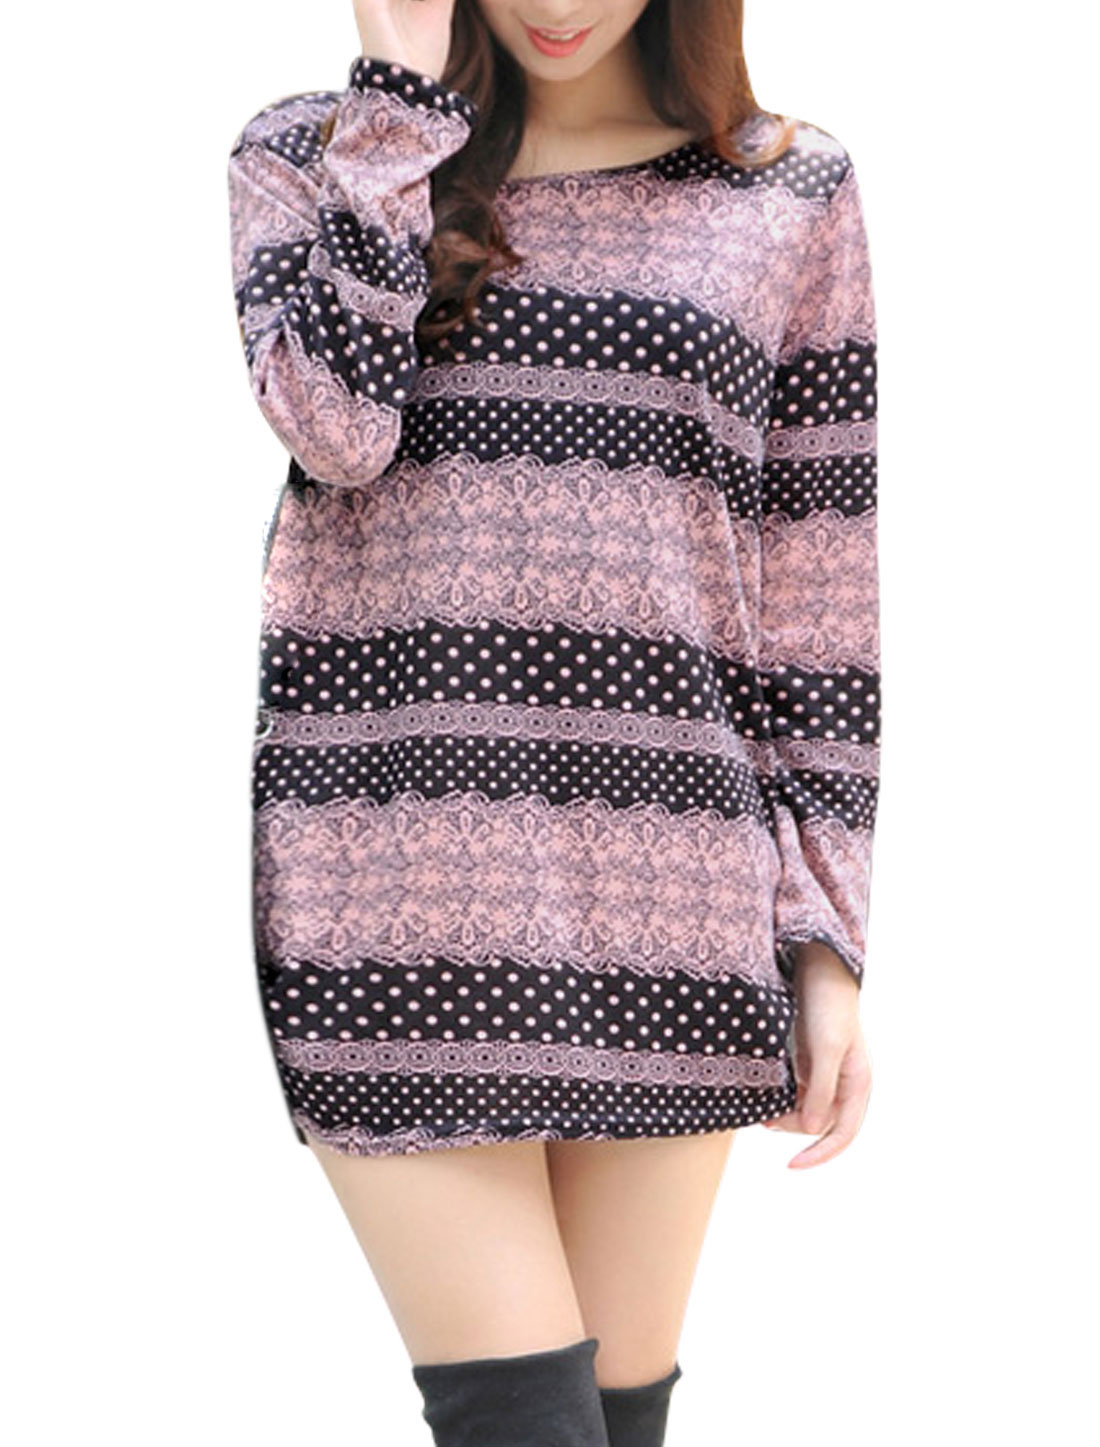 Women Dots Floral Pattern Shirred Sides Tunic Knit Top Dark Purple S